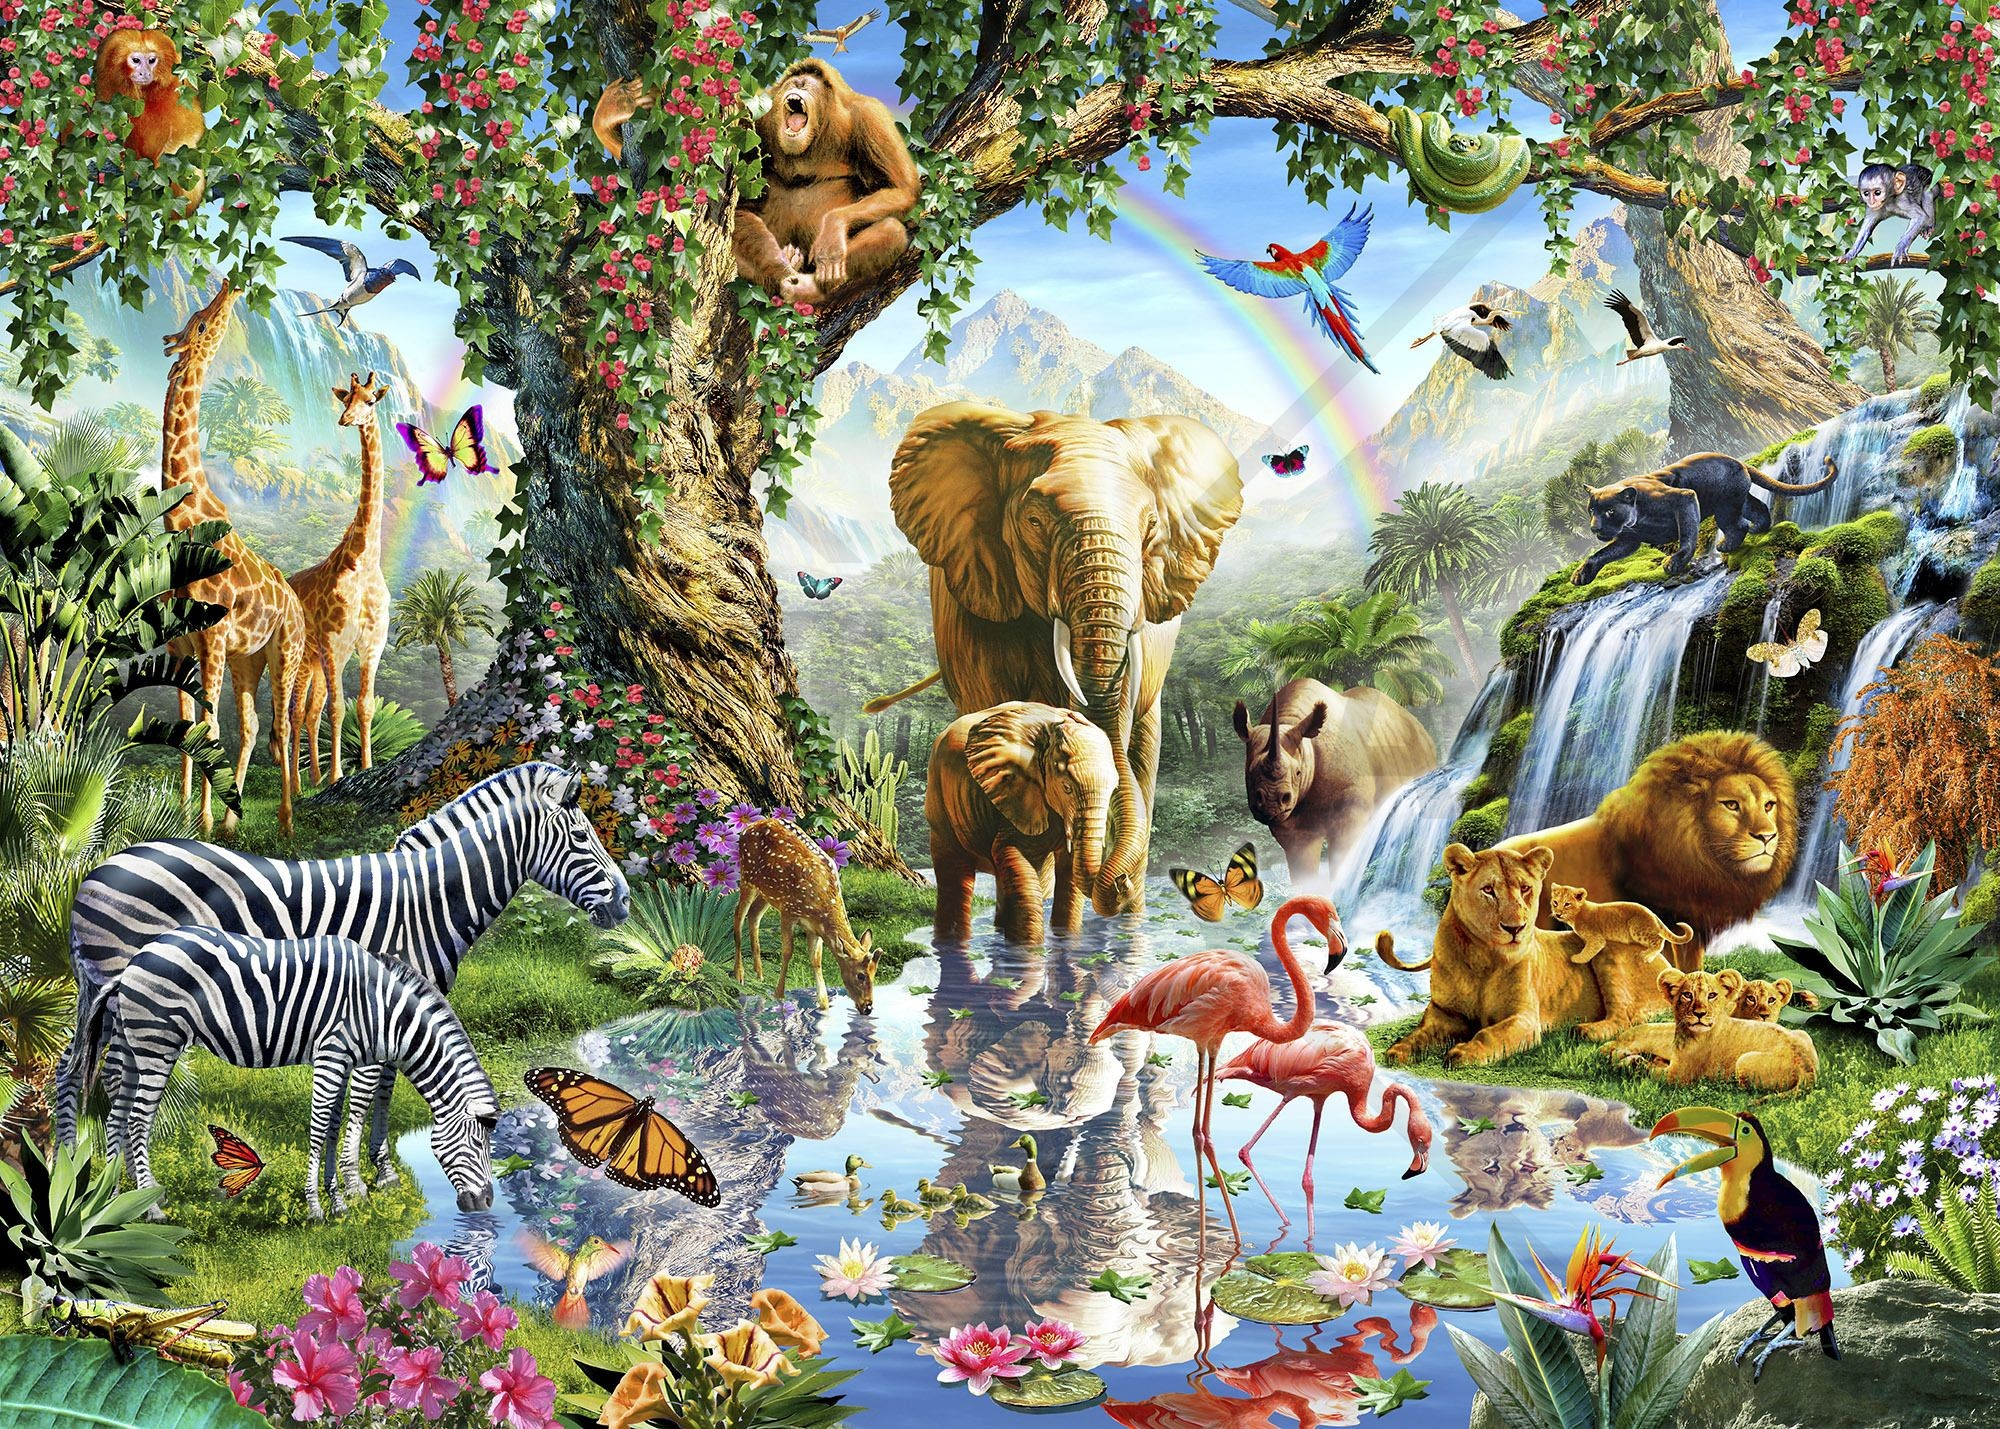 2000x1429 Jungle Lake with wild Animals - Wall Mural & Photo Wallpaper - Photowall